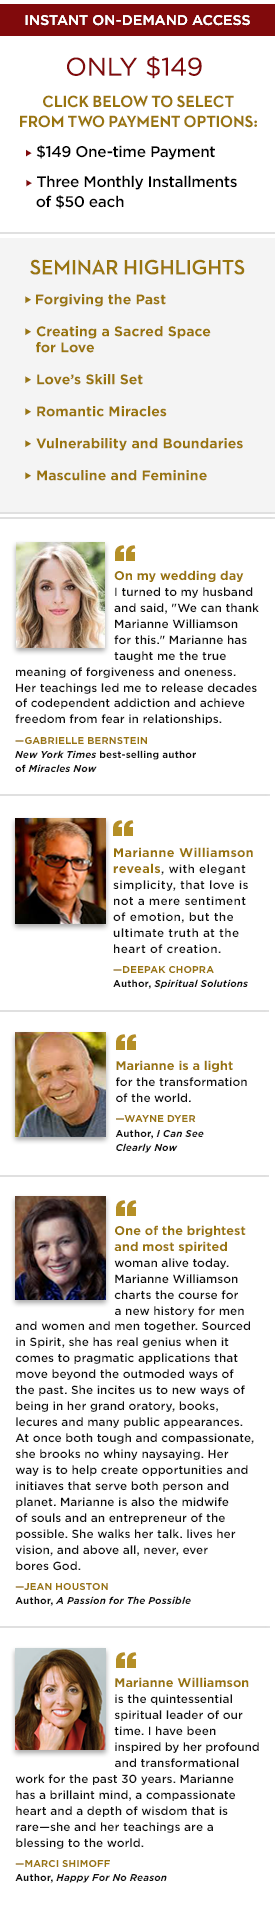 sidebar_275px_romanticmysteries-1 - Marianne Williamson